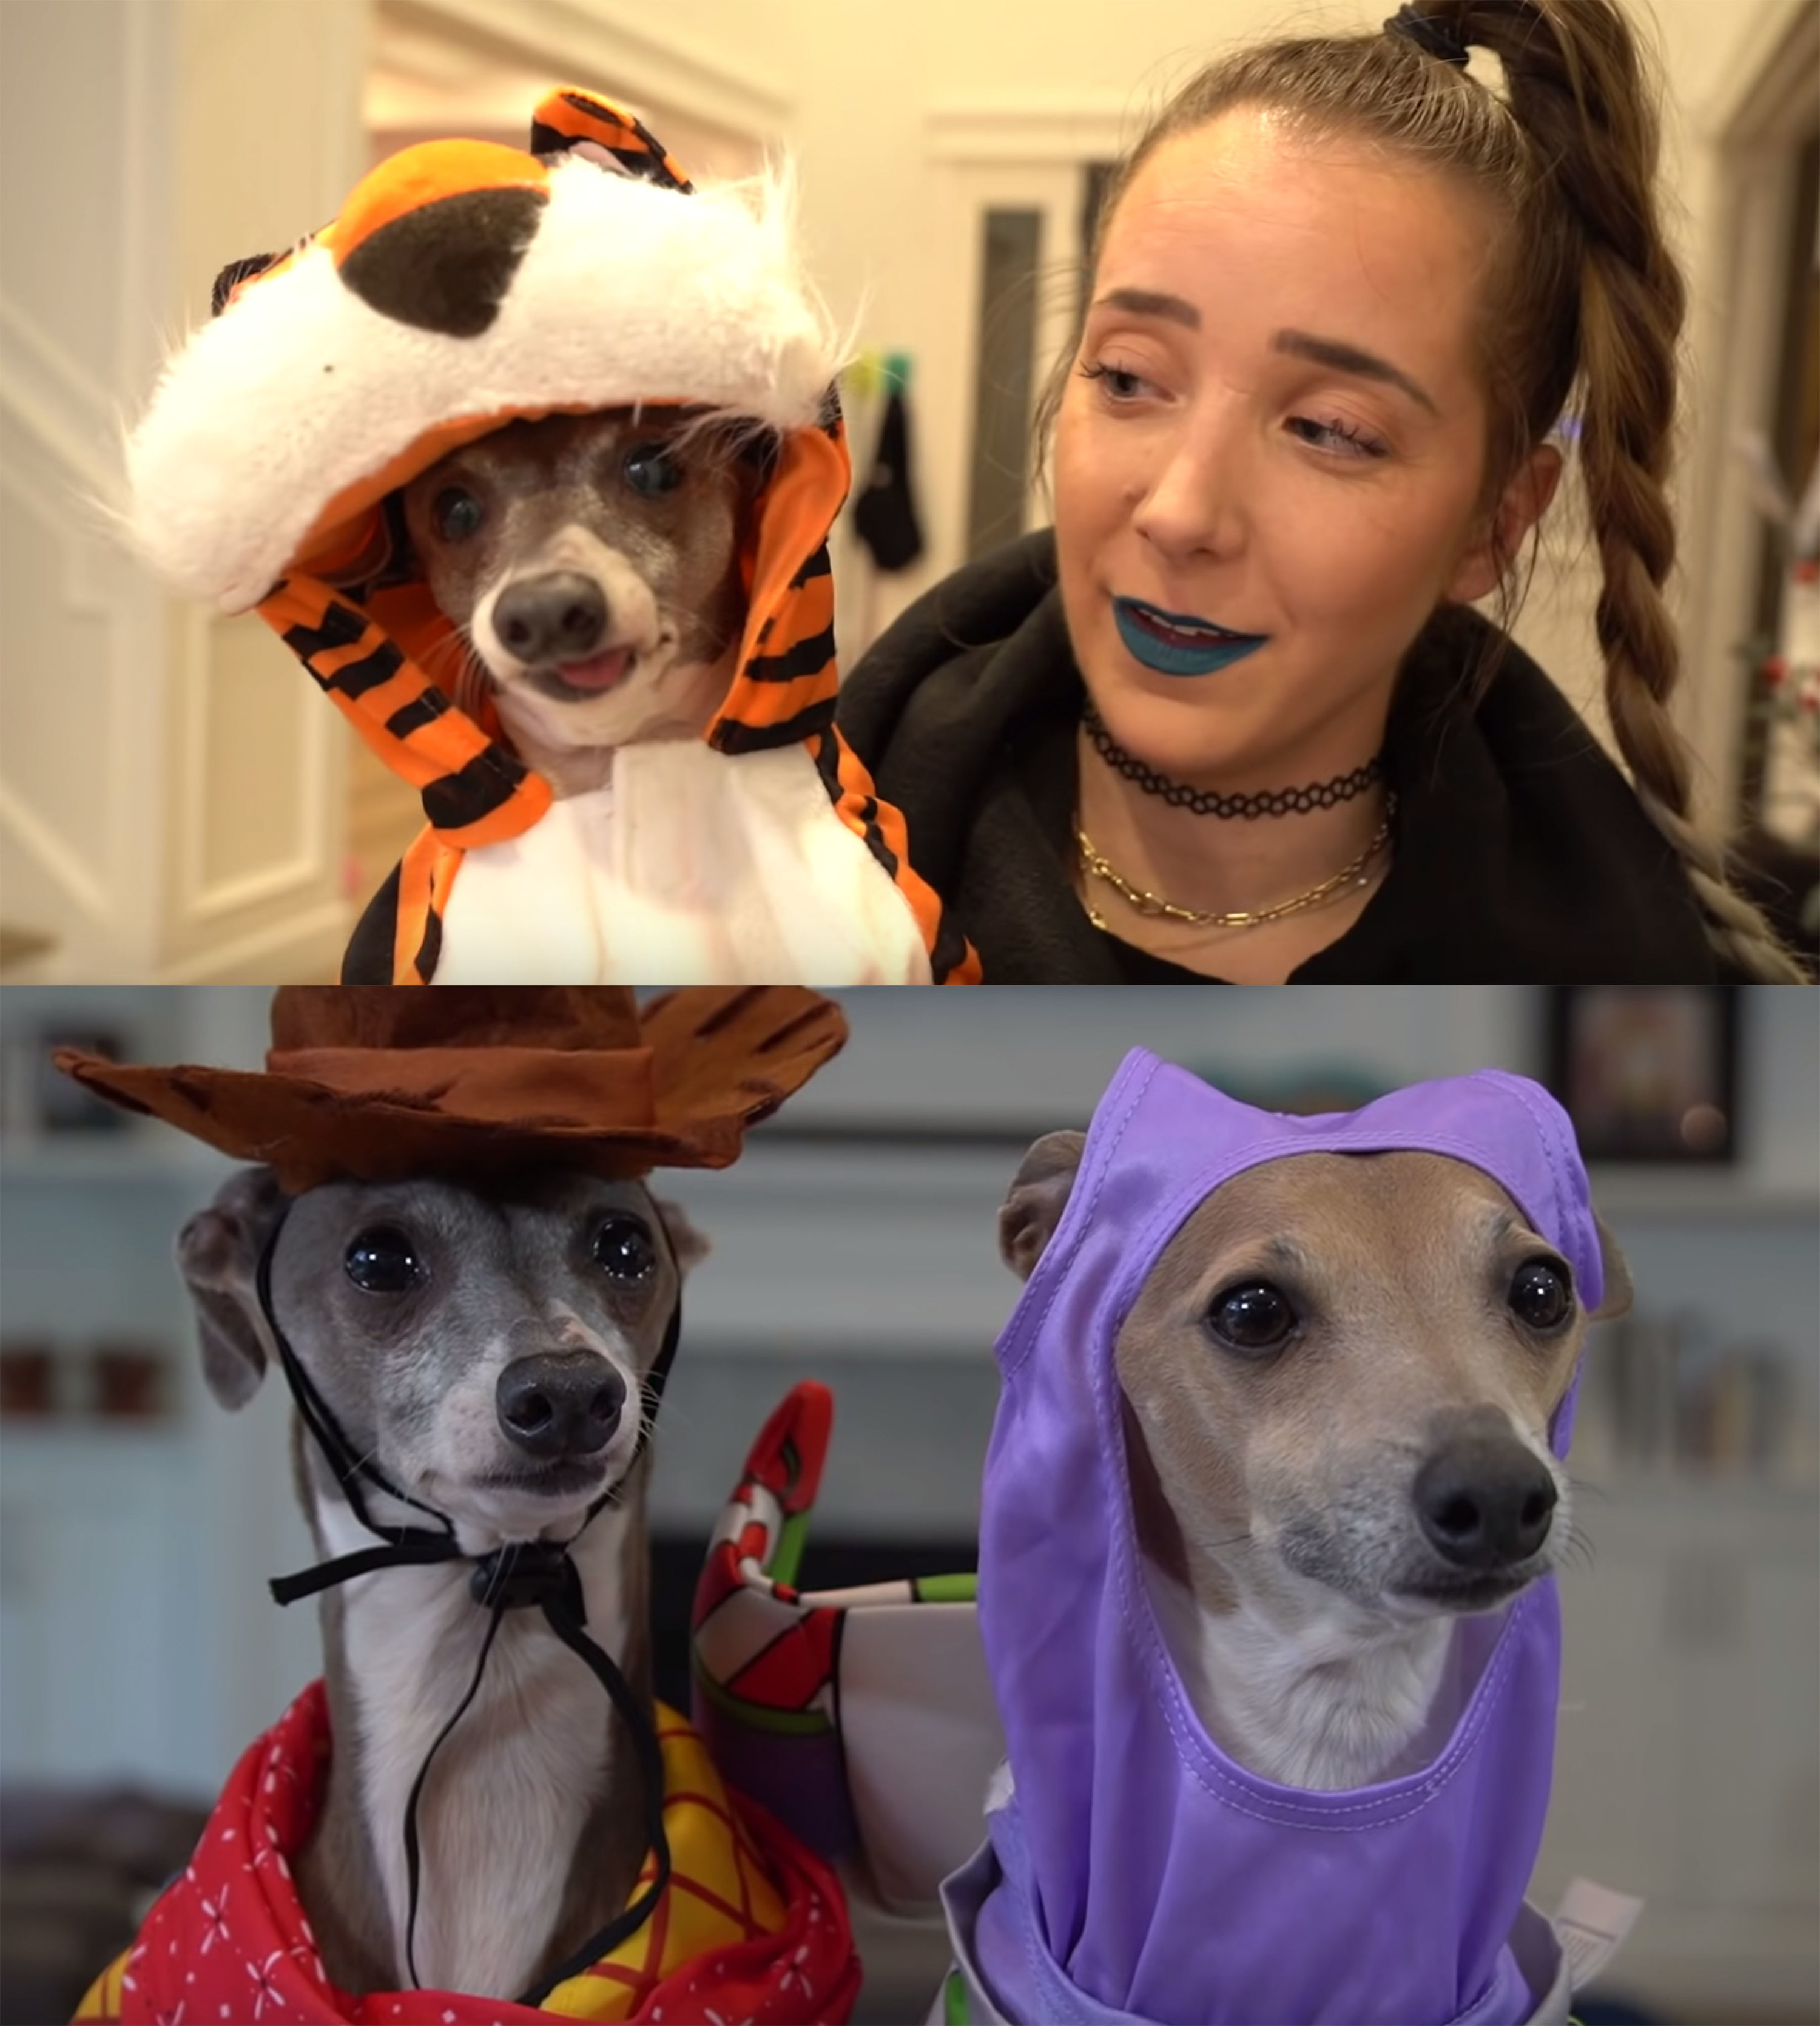 17 Times Jenna Marbles' Dog Kermit Sparked Pure Joy - Aaj ...